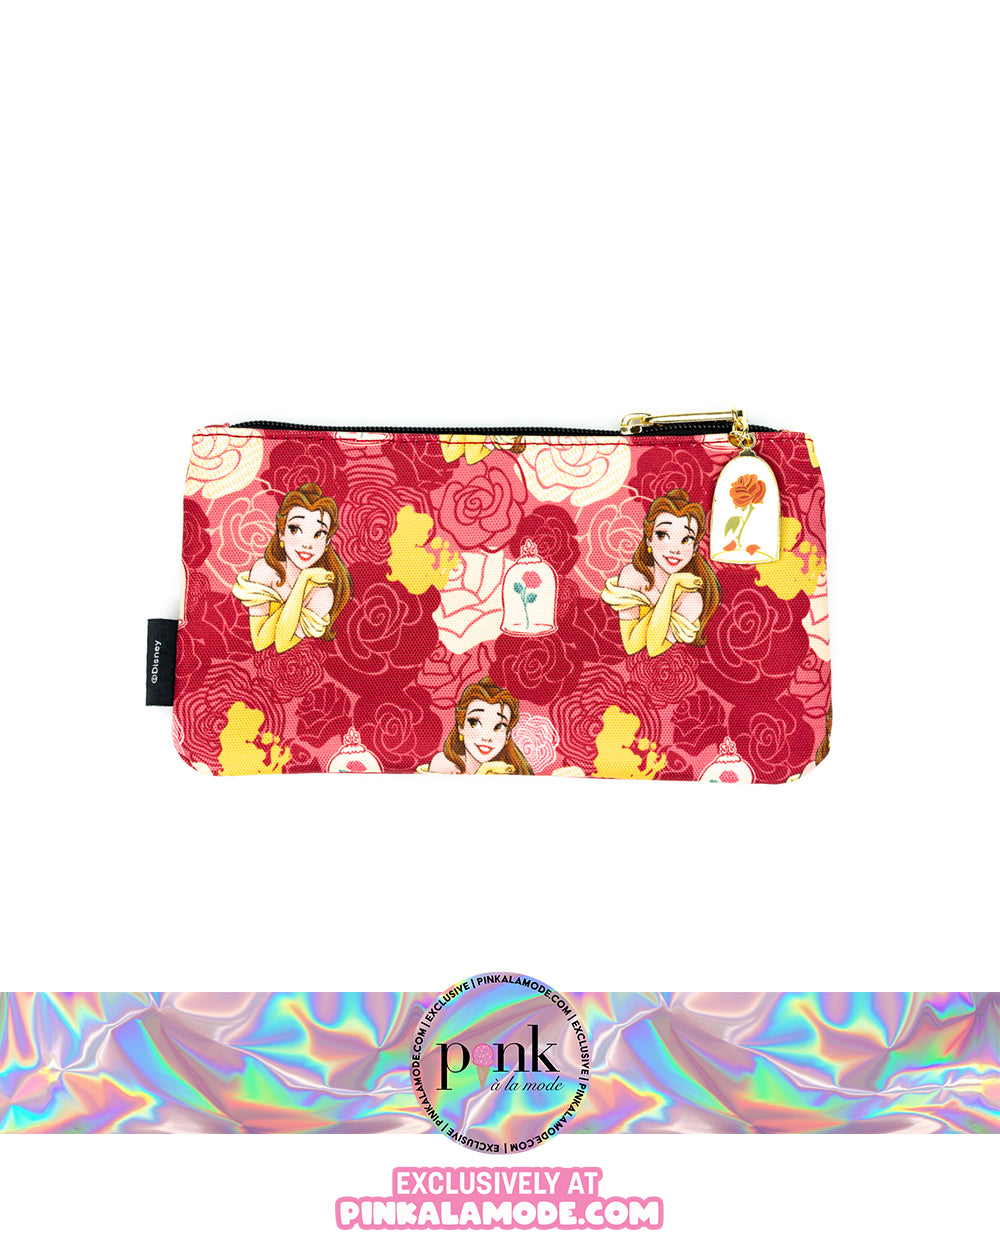 Belle Coin Purse - Pink a la Mode Exclusive *PREORDER* - The Pink a la Mode - Loungefly - The Pink a la Mode